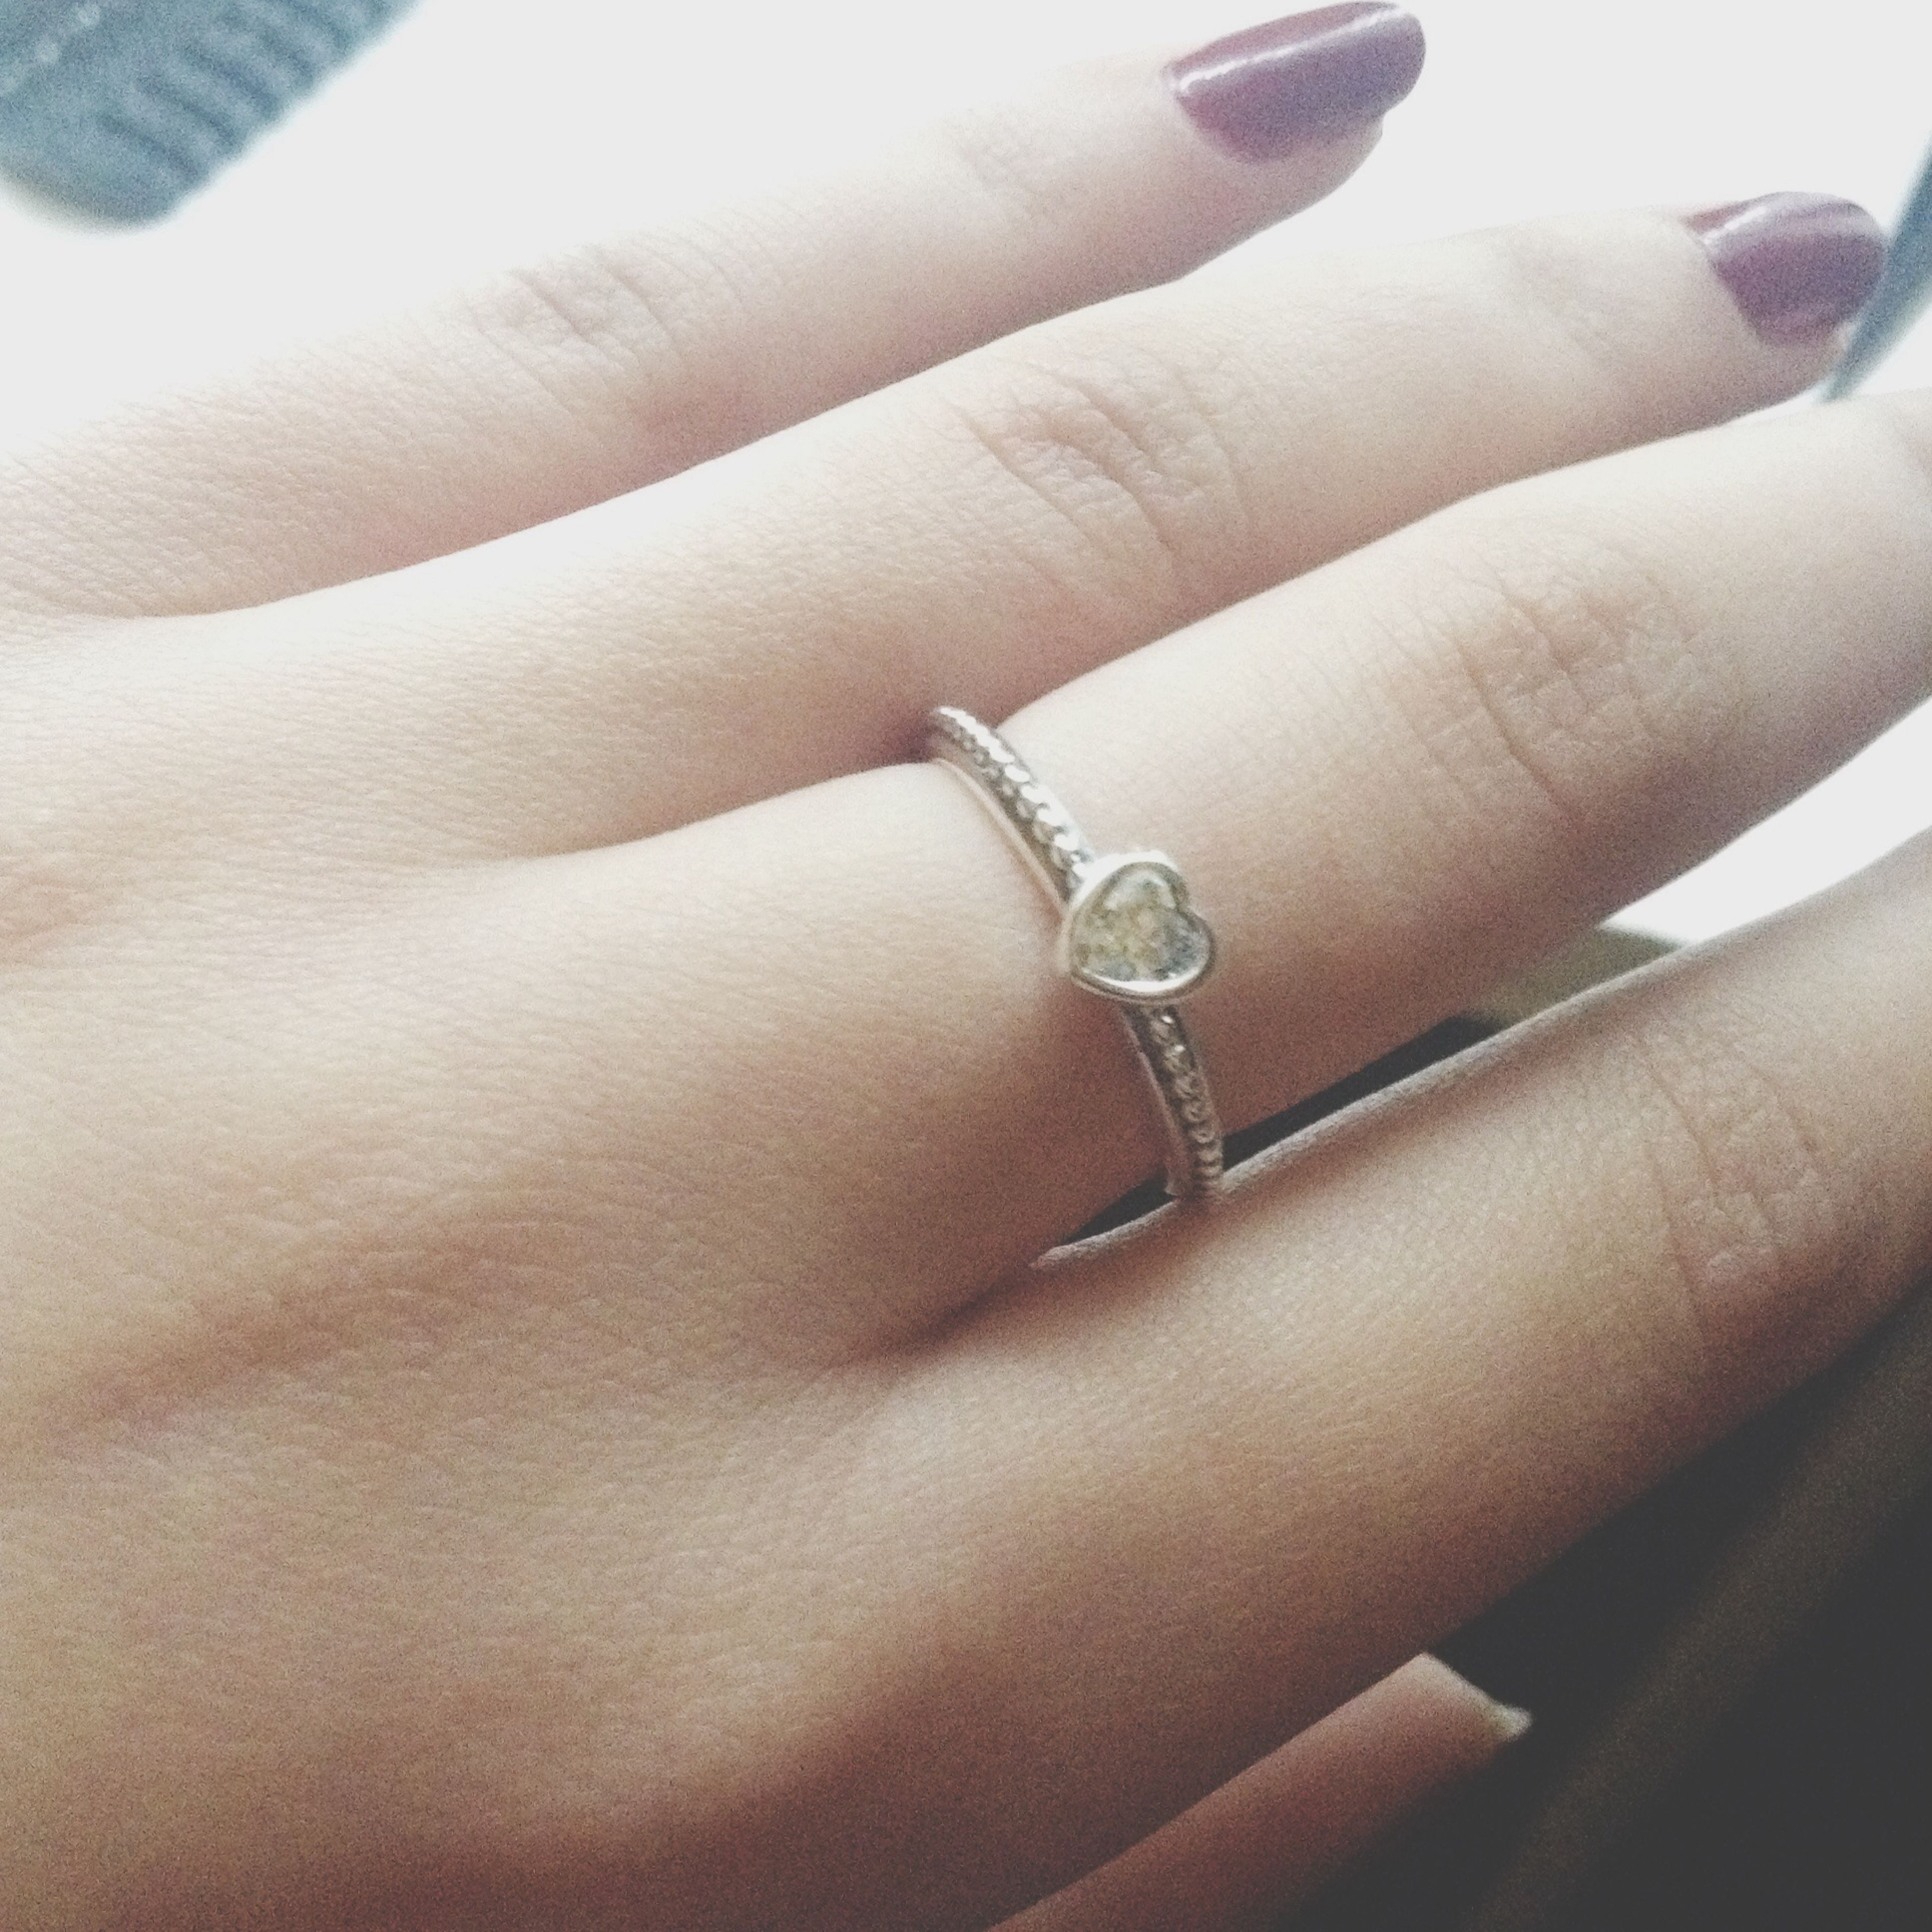 person, indoors, part of, cropped, close-up, human finger, lifestyles, high angle view, femininity, human skin, unrecognizable person, low section, holding, personal perspective, ring